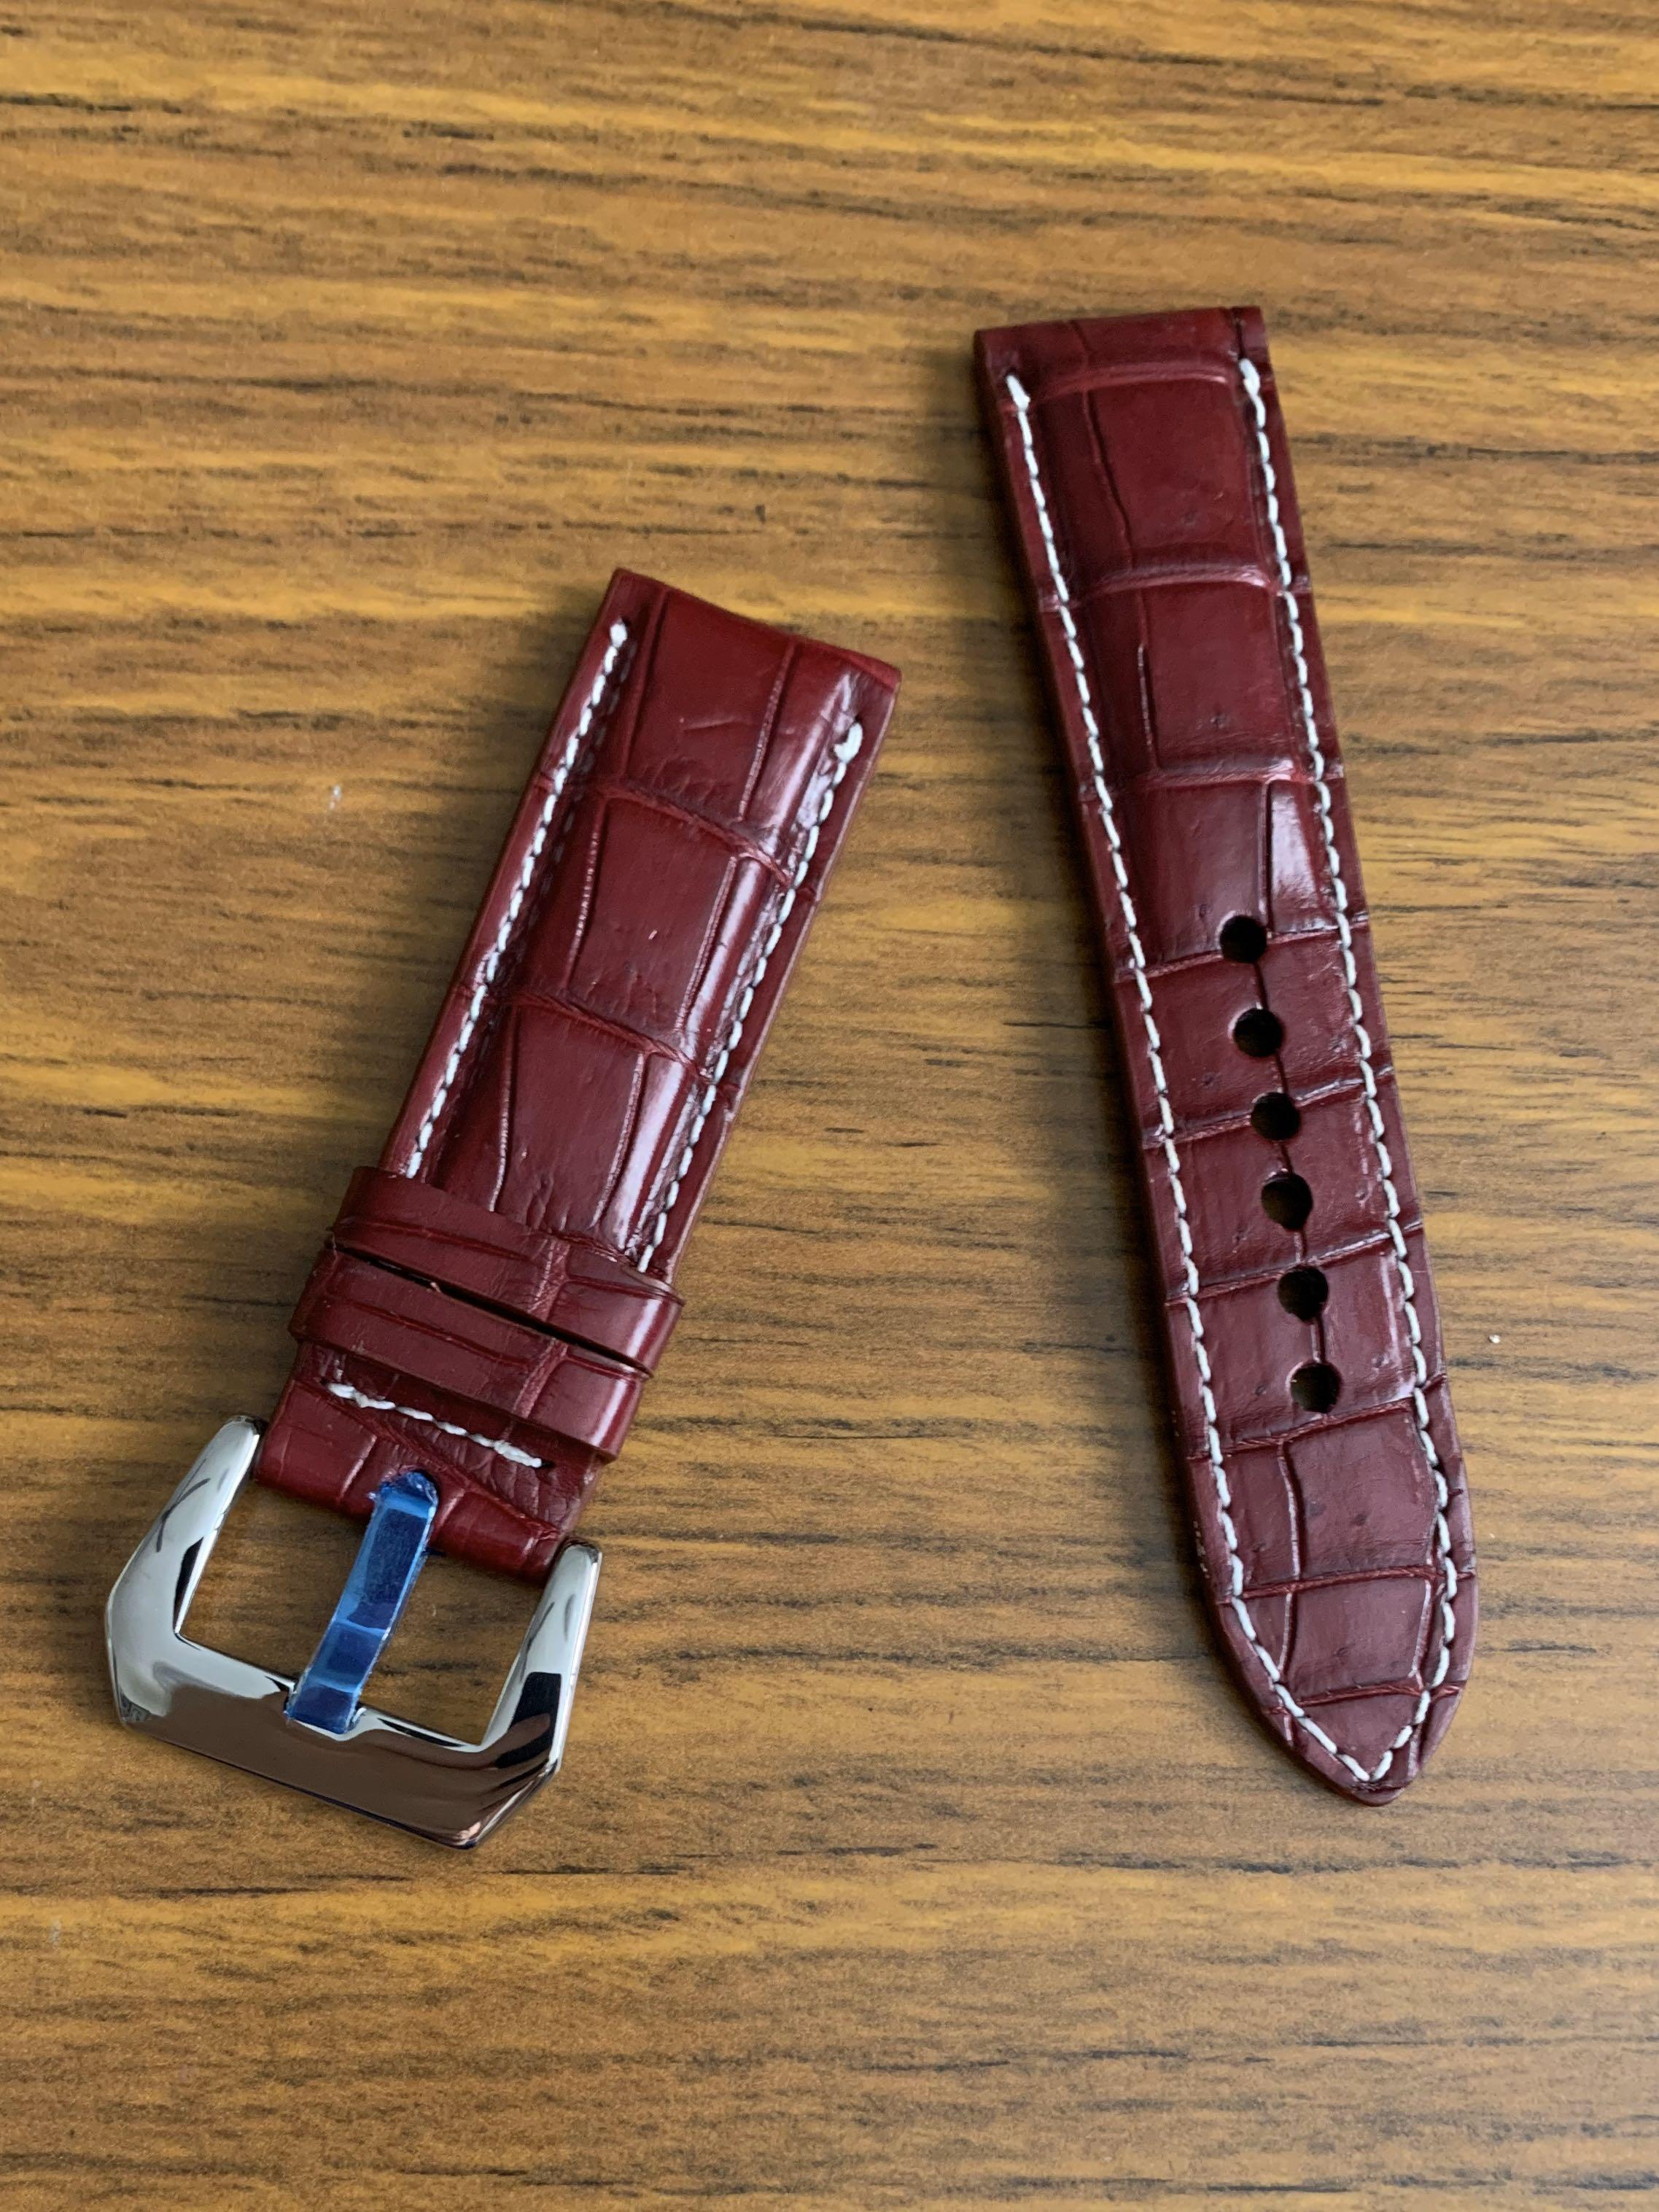 [AVAILABLE] 24mm/22mm Authentic Classy Oxblood Burgundy Brown Alligator 🐊  Crocodile Watch Strap with White Stitching (120mm, S-75mm) (only piece😊👍🏻) (IF RESERVED, PLS SCREENSHOT THIS ITEM AND TEXT US THRU AN ACTIVE LISTING TO BUY 🤗 Tq 🙏🏻)